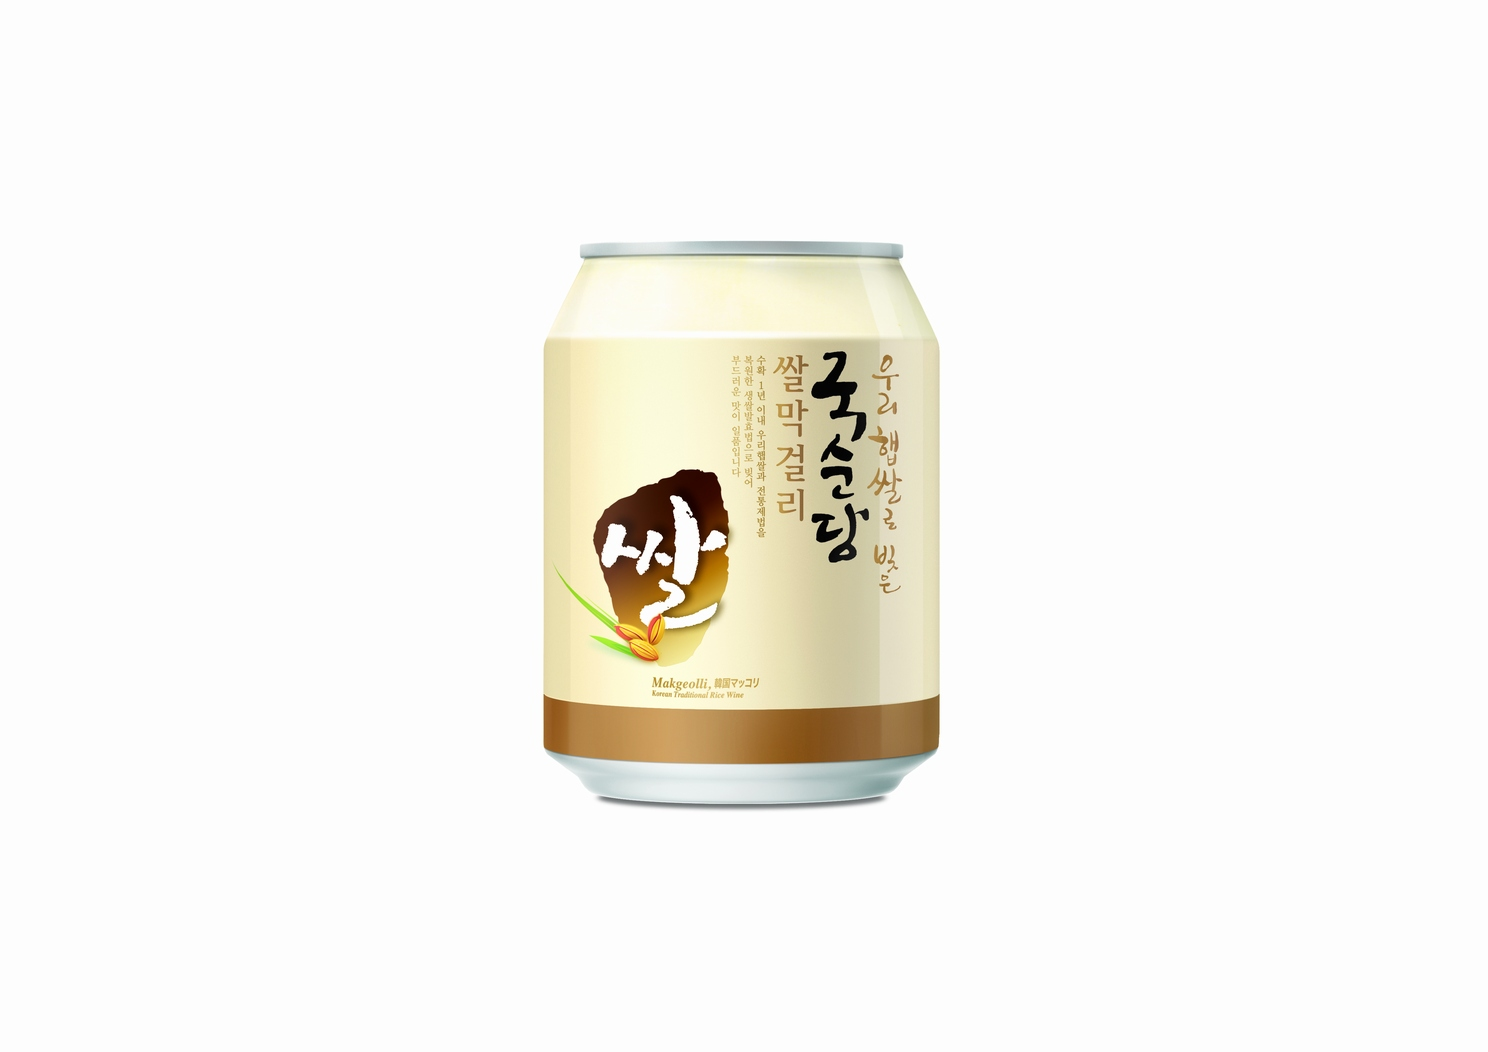 Korean Alcoholic Beverage 'Canned Makkoli' (Milky Rice Wine)  [2011/06/27]